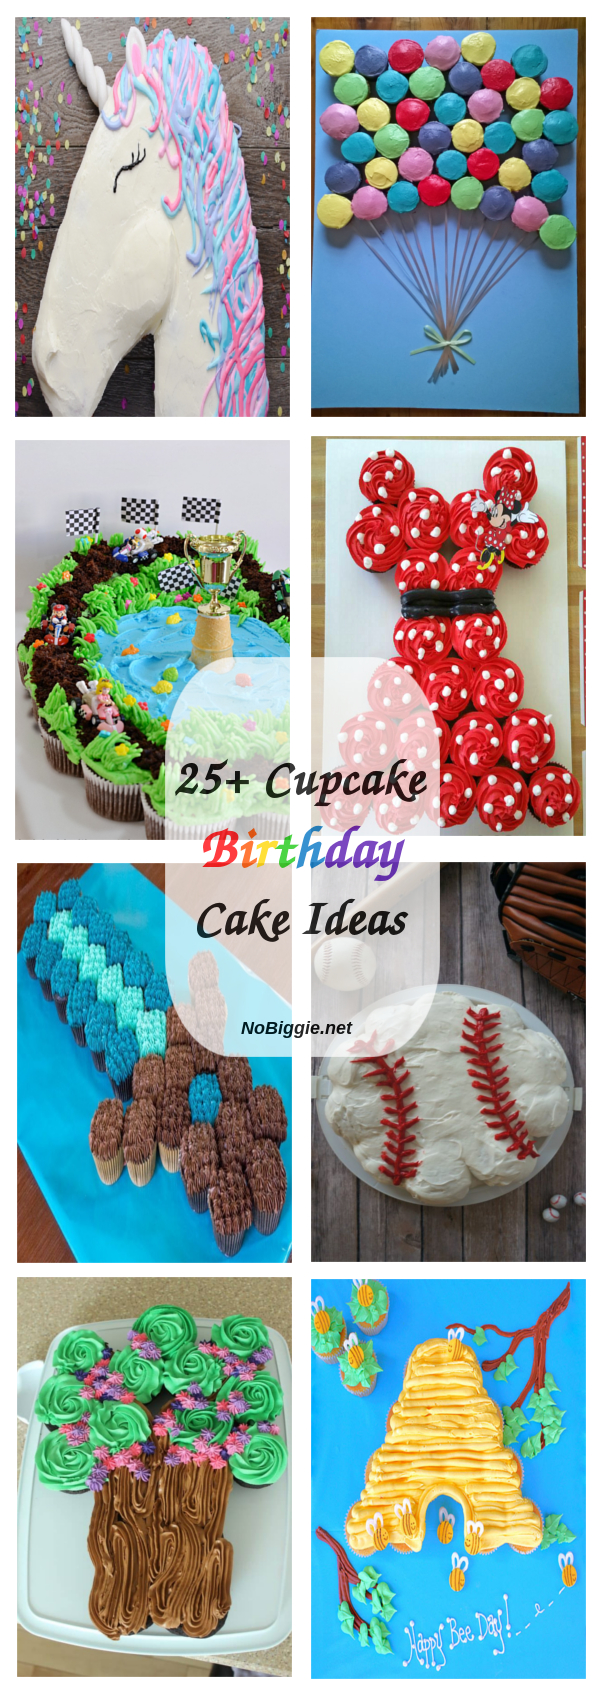 25 Cupcake Birthday Cake Ideas